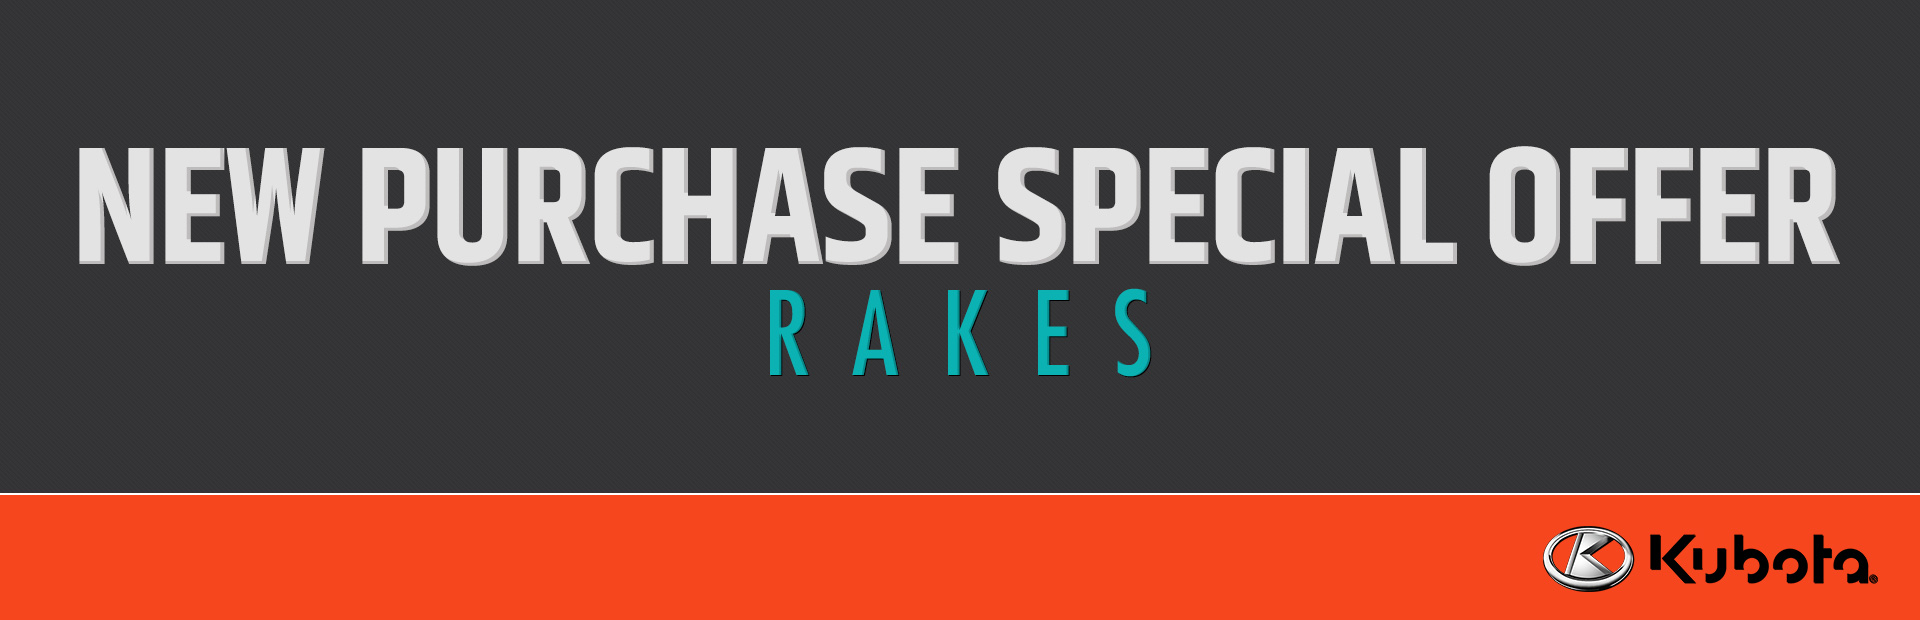 Kubota: New Purchase Special Offer - Rakes